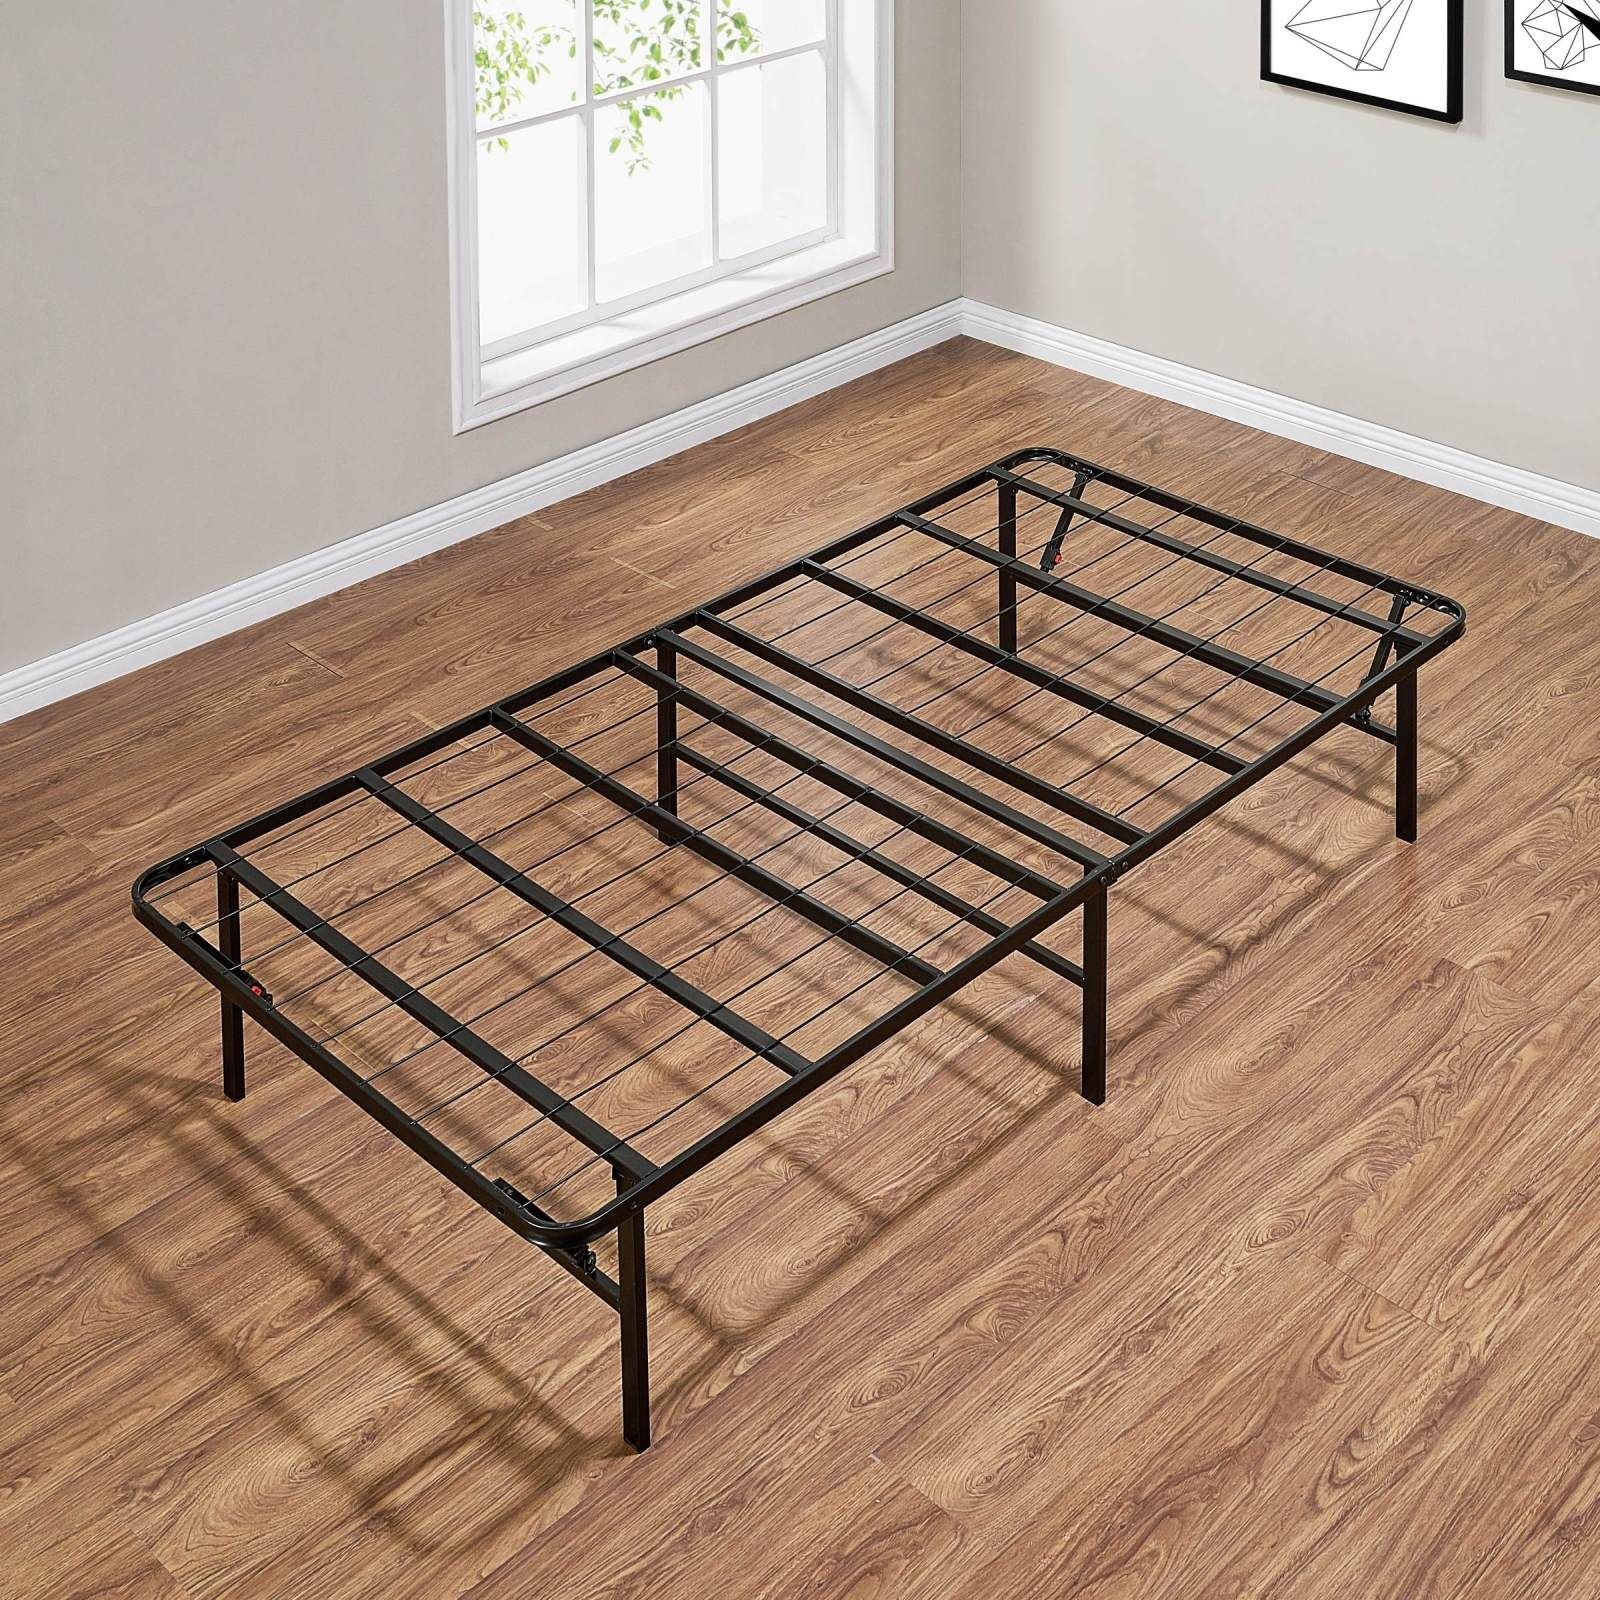 Home In 2020 Steel Bed Frame Steel Bed Twin Size Bed Frame